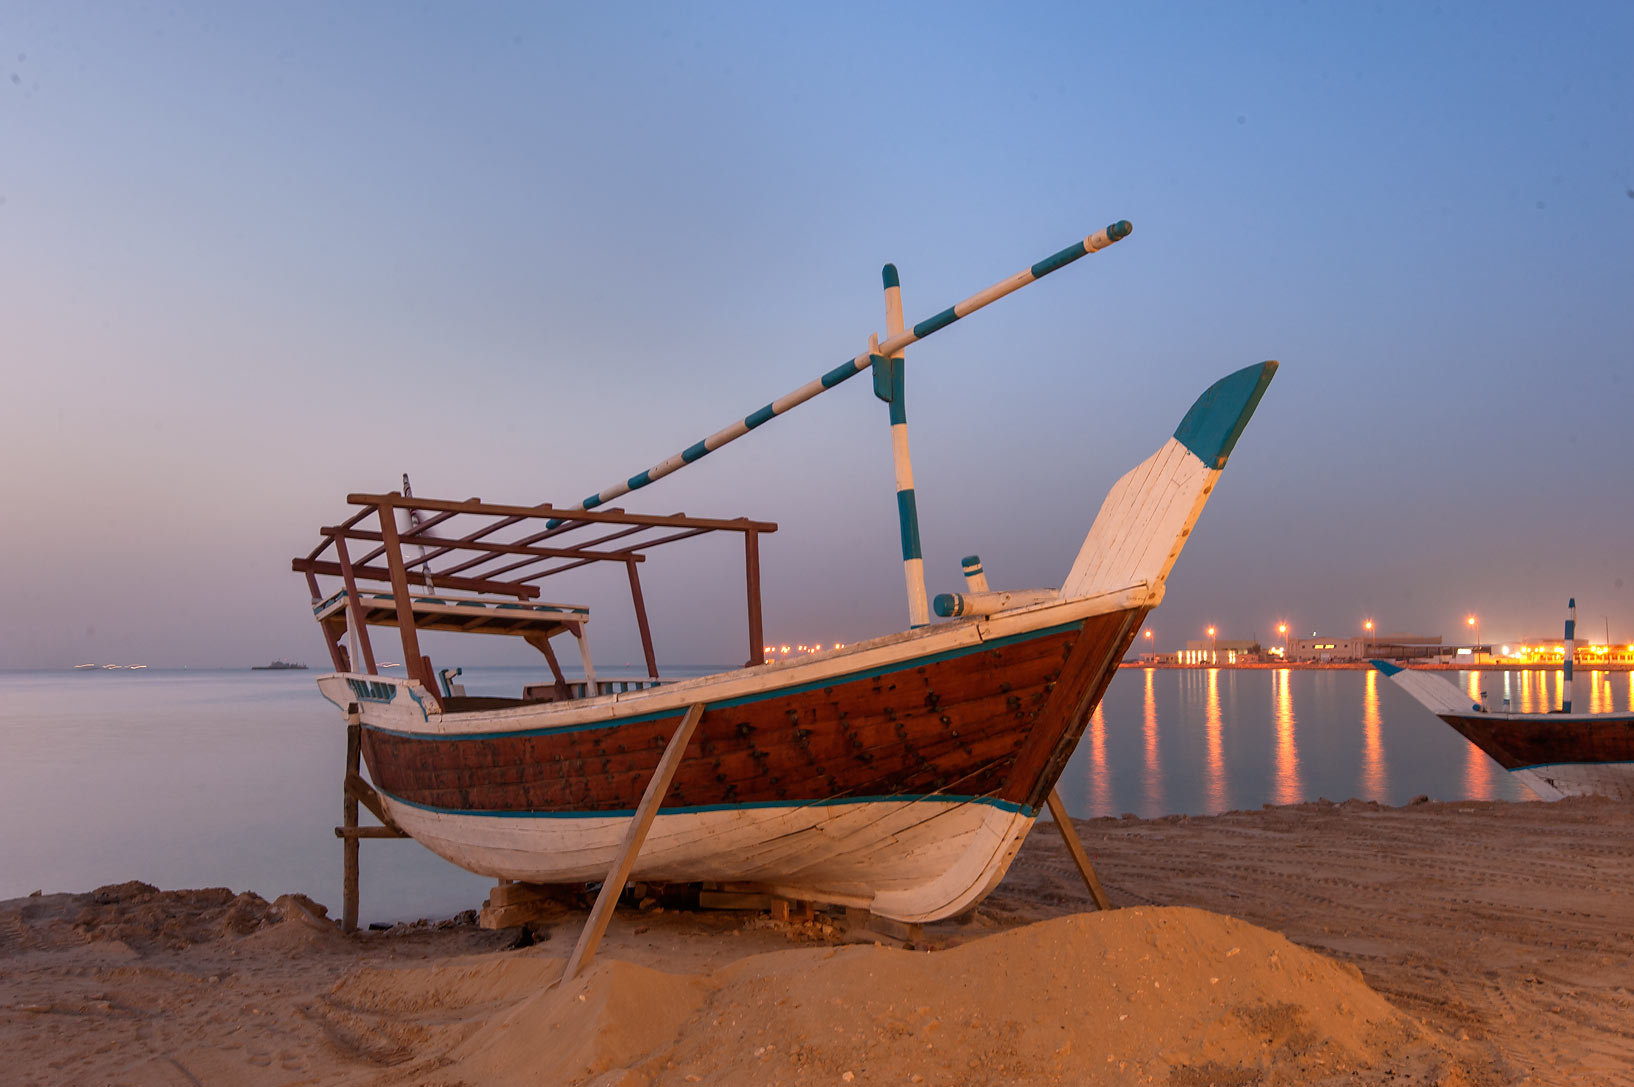 Beached dhow boat at morning in Al Wakra Heritage Village (Souq Waqif in Al Wakrah). Qatar